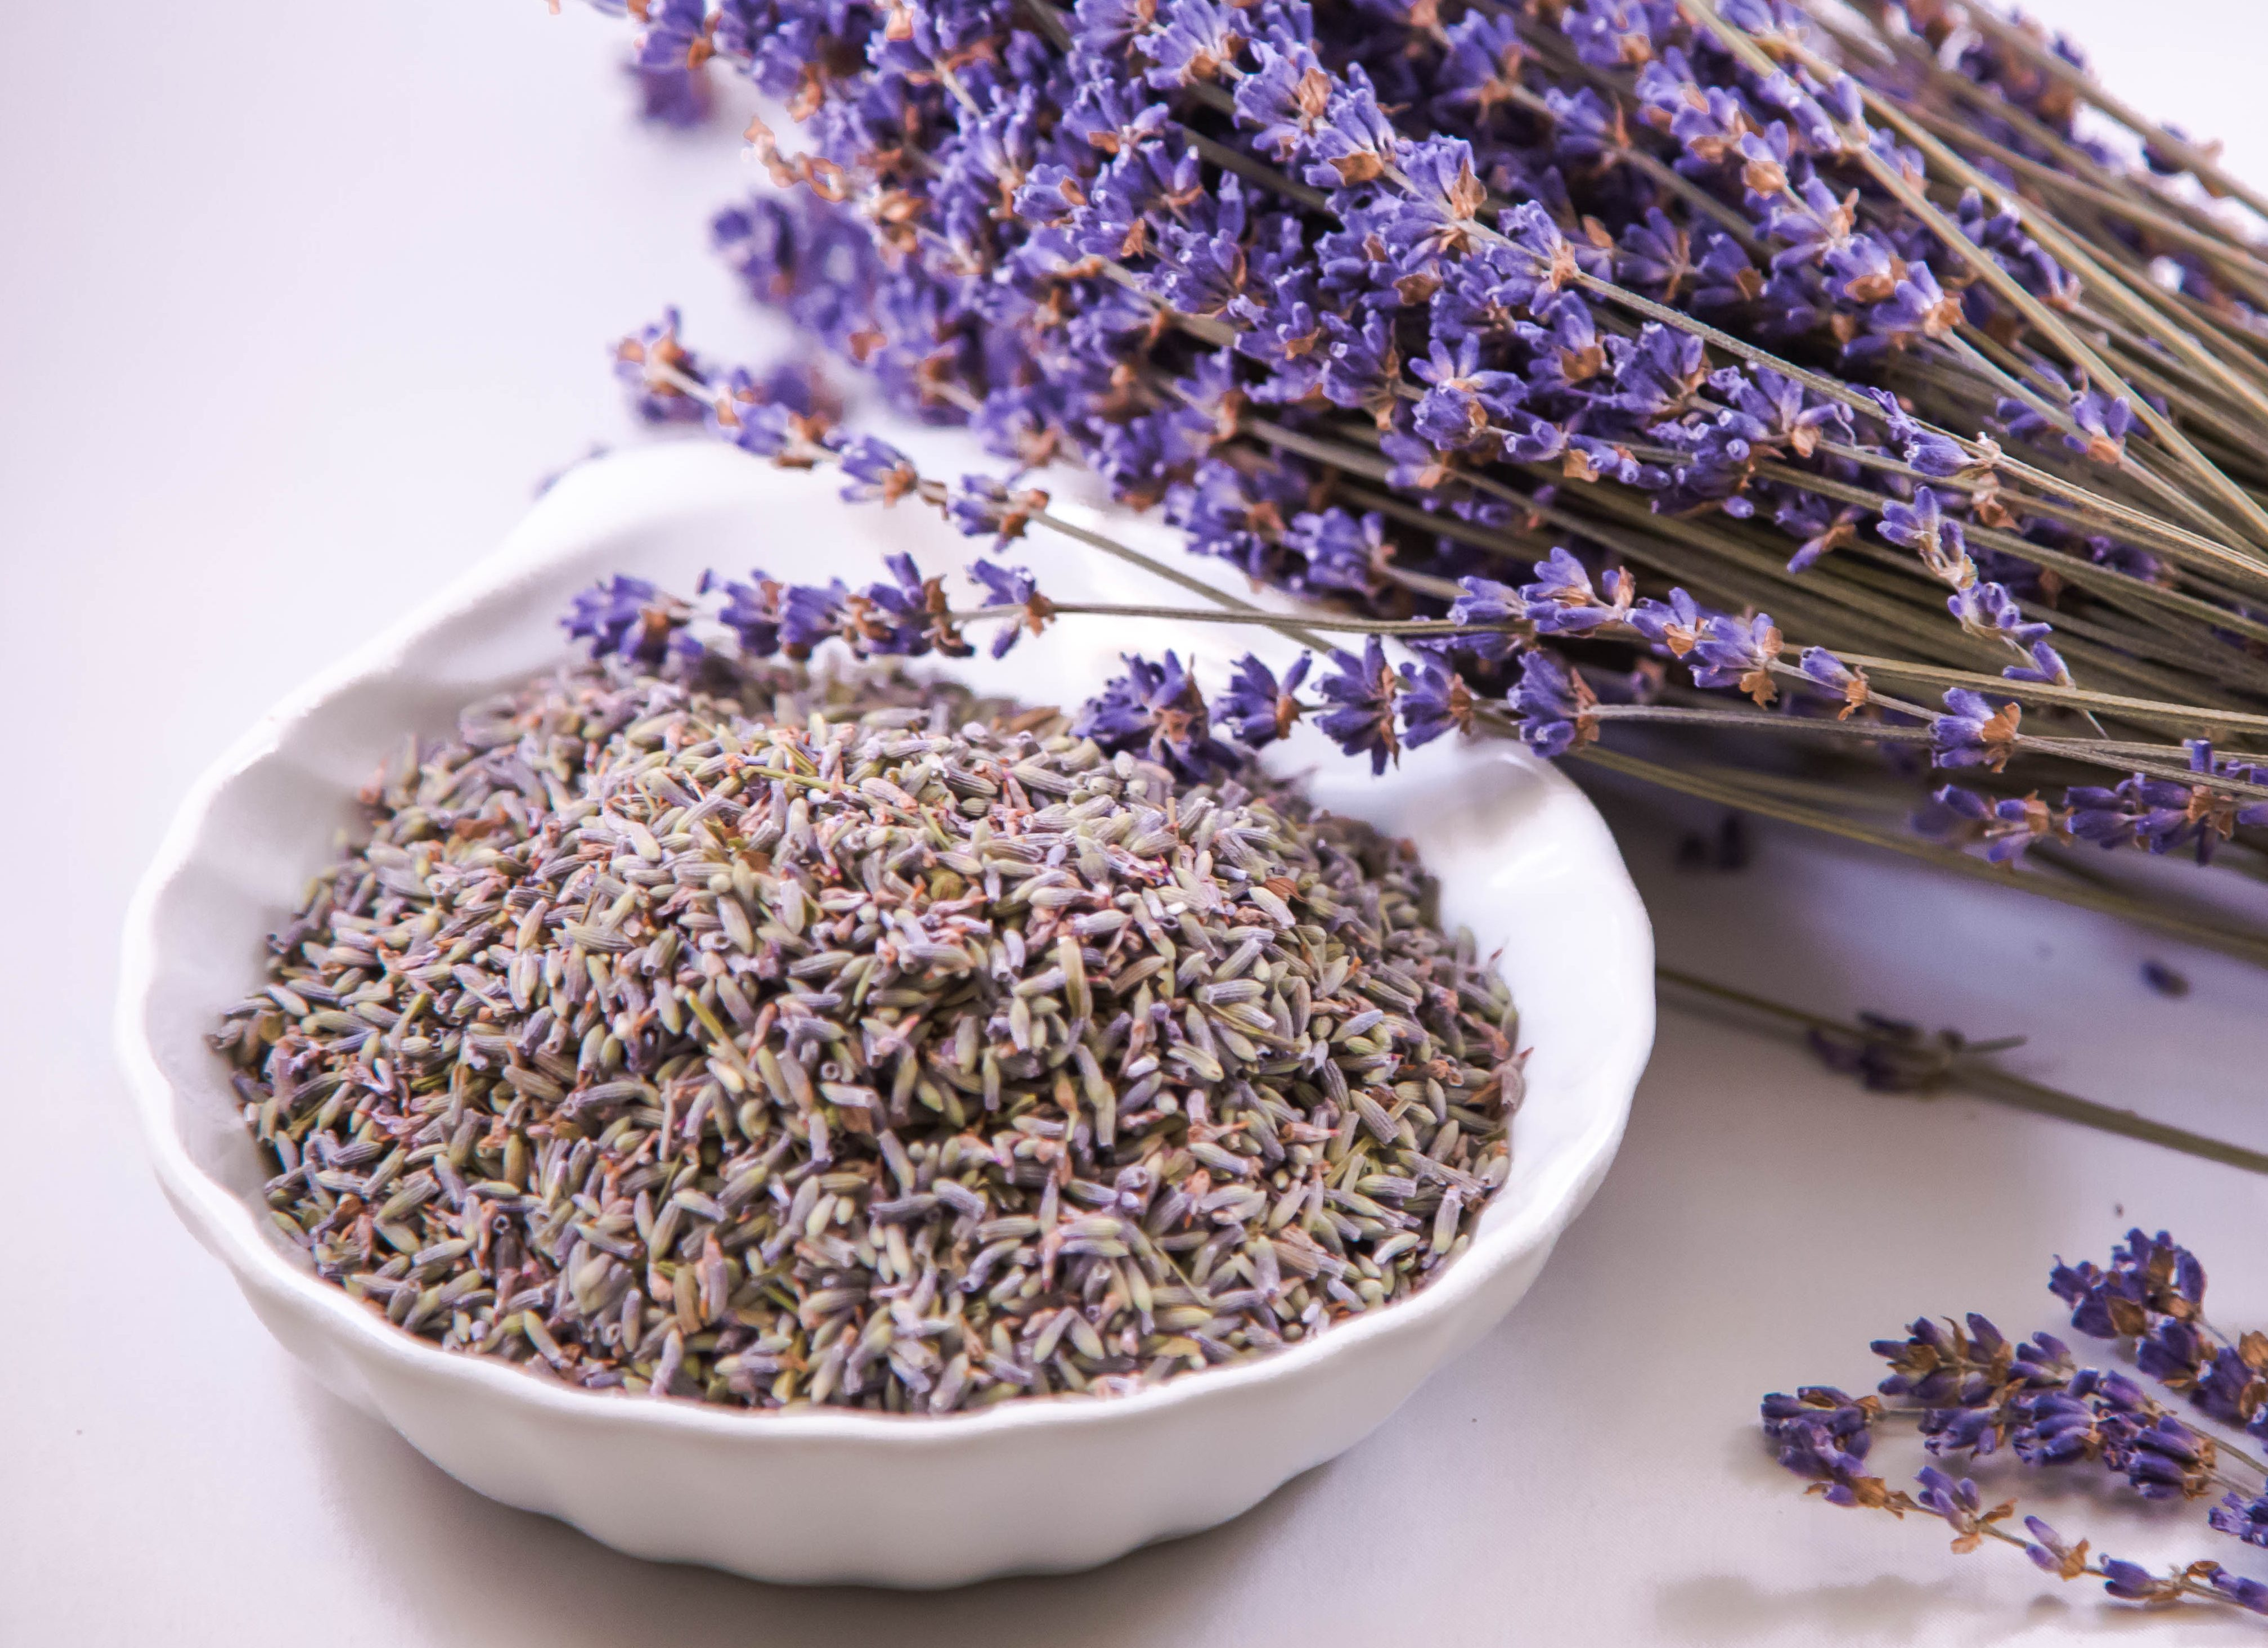 Best quality natural essential oils including Lavender - Lavandula , 100% Pure & Natural Lavander Oil Bulgarian, and other fragrance & perfume oils at the most discount rates by BMV Fragrances in UP, India.